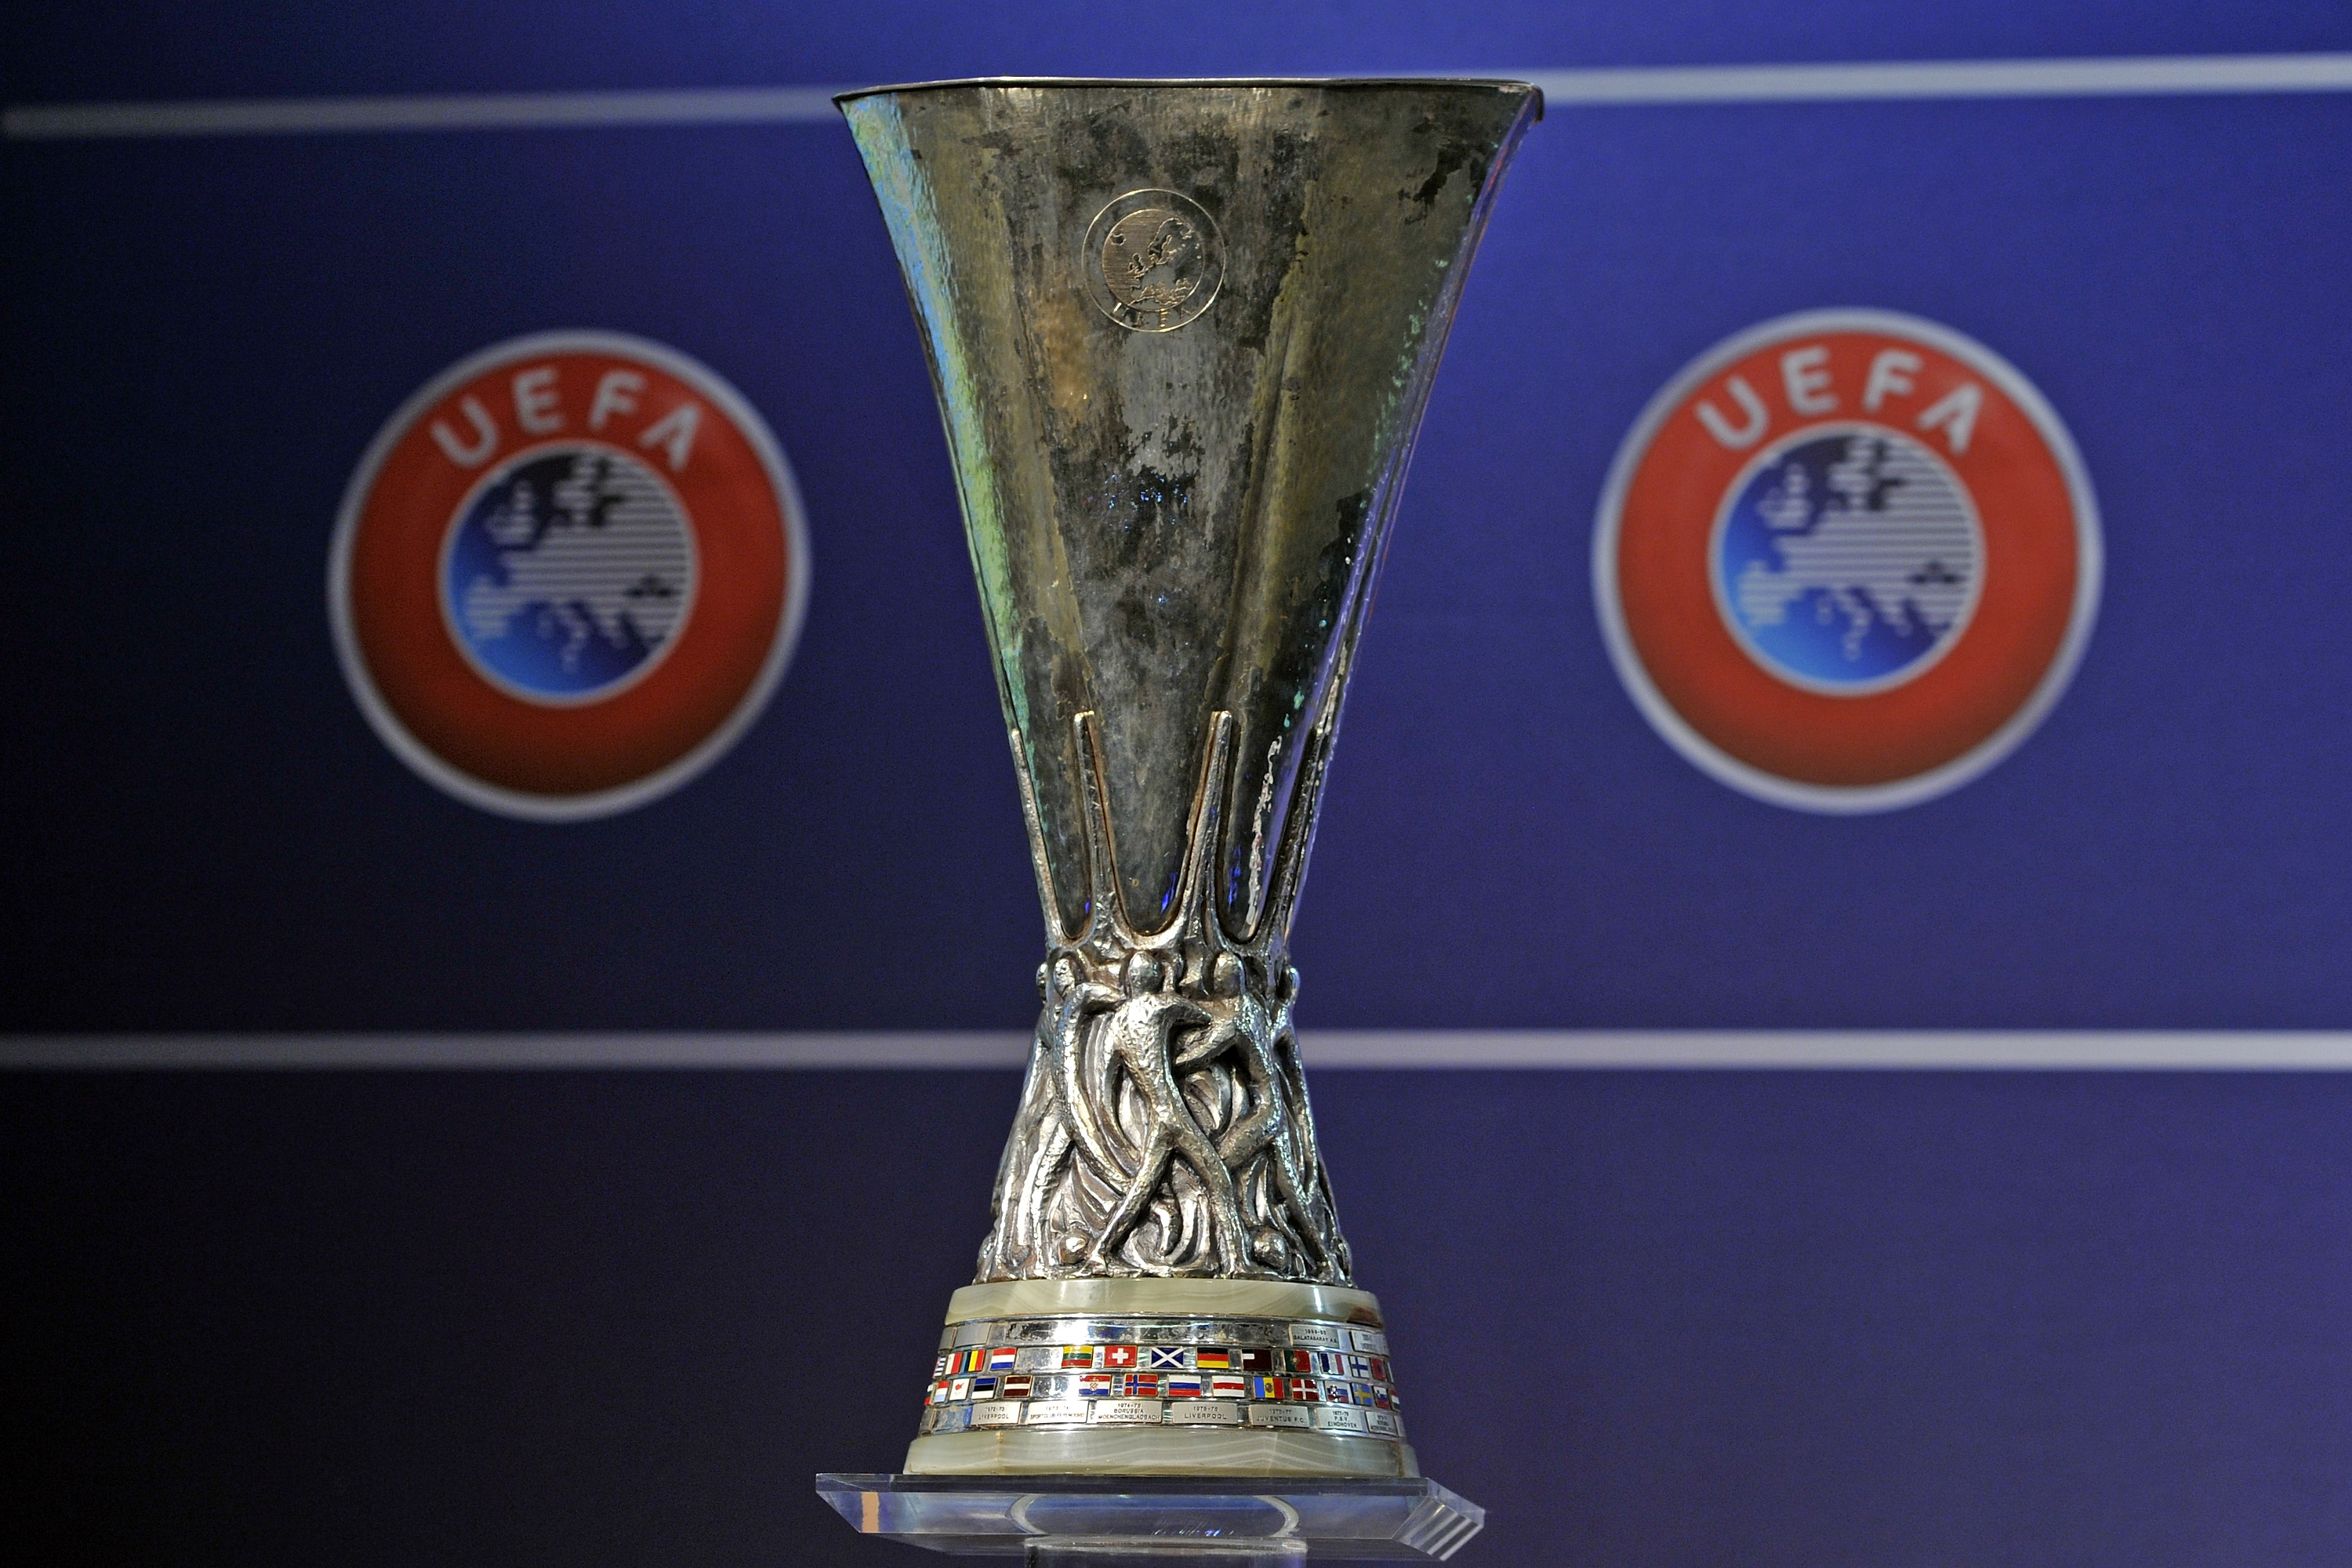 UEFA Europa League trophy - Goal.com